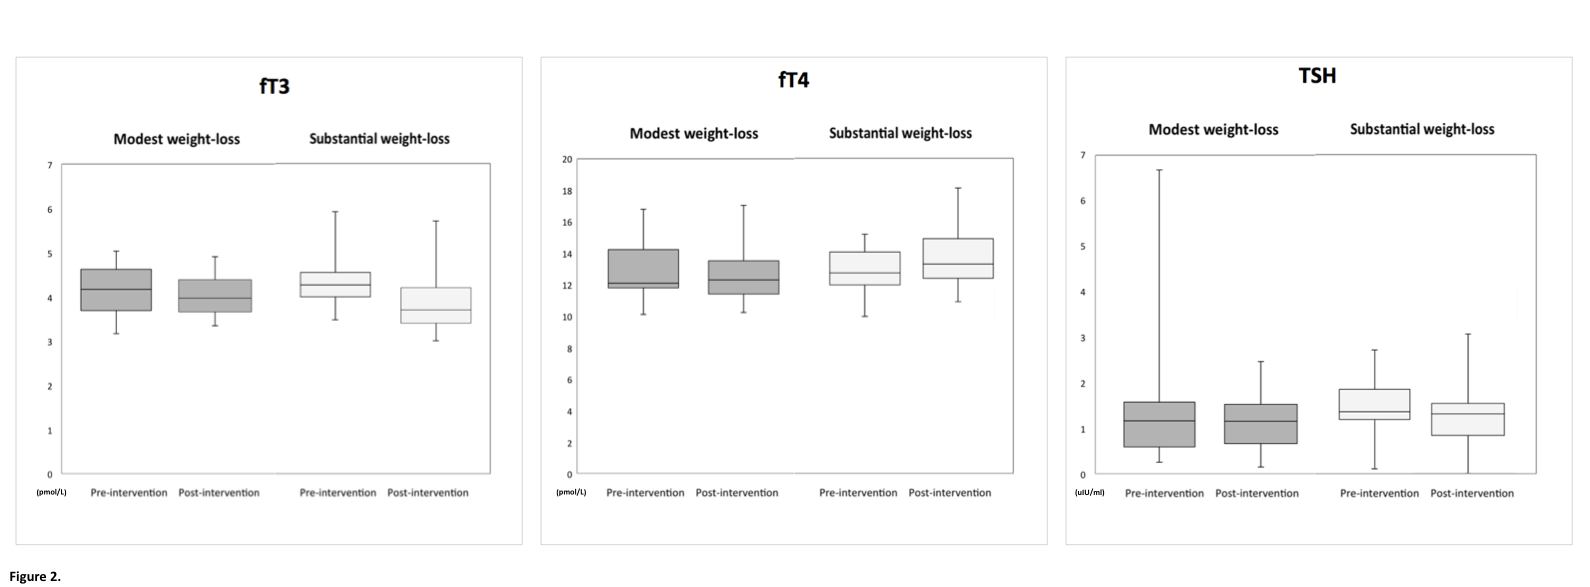 5767e481cd9a6-all+boxplots+with+units+2.png